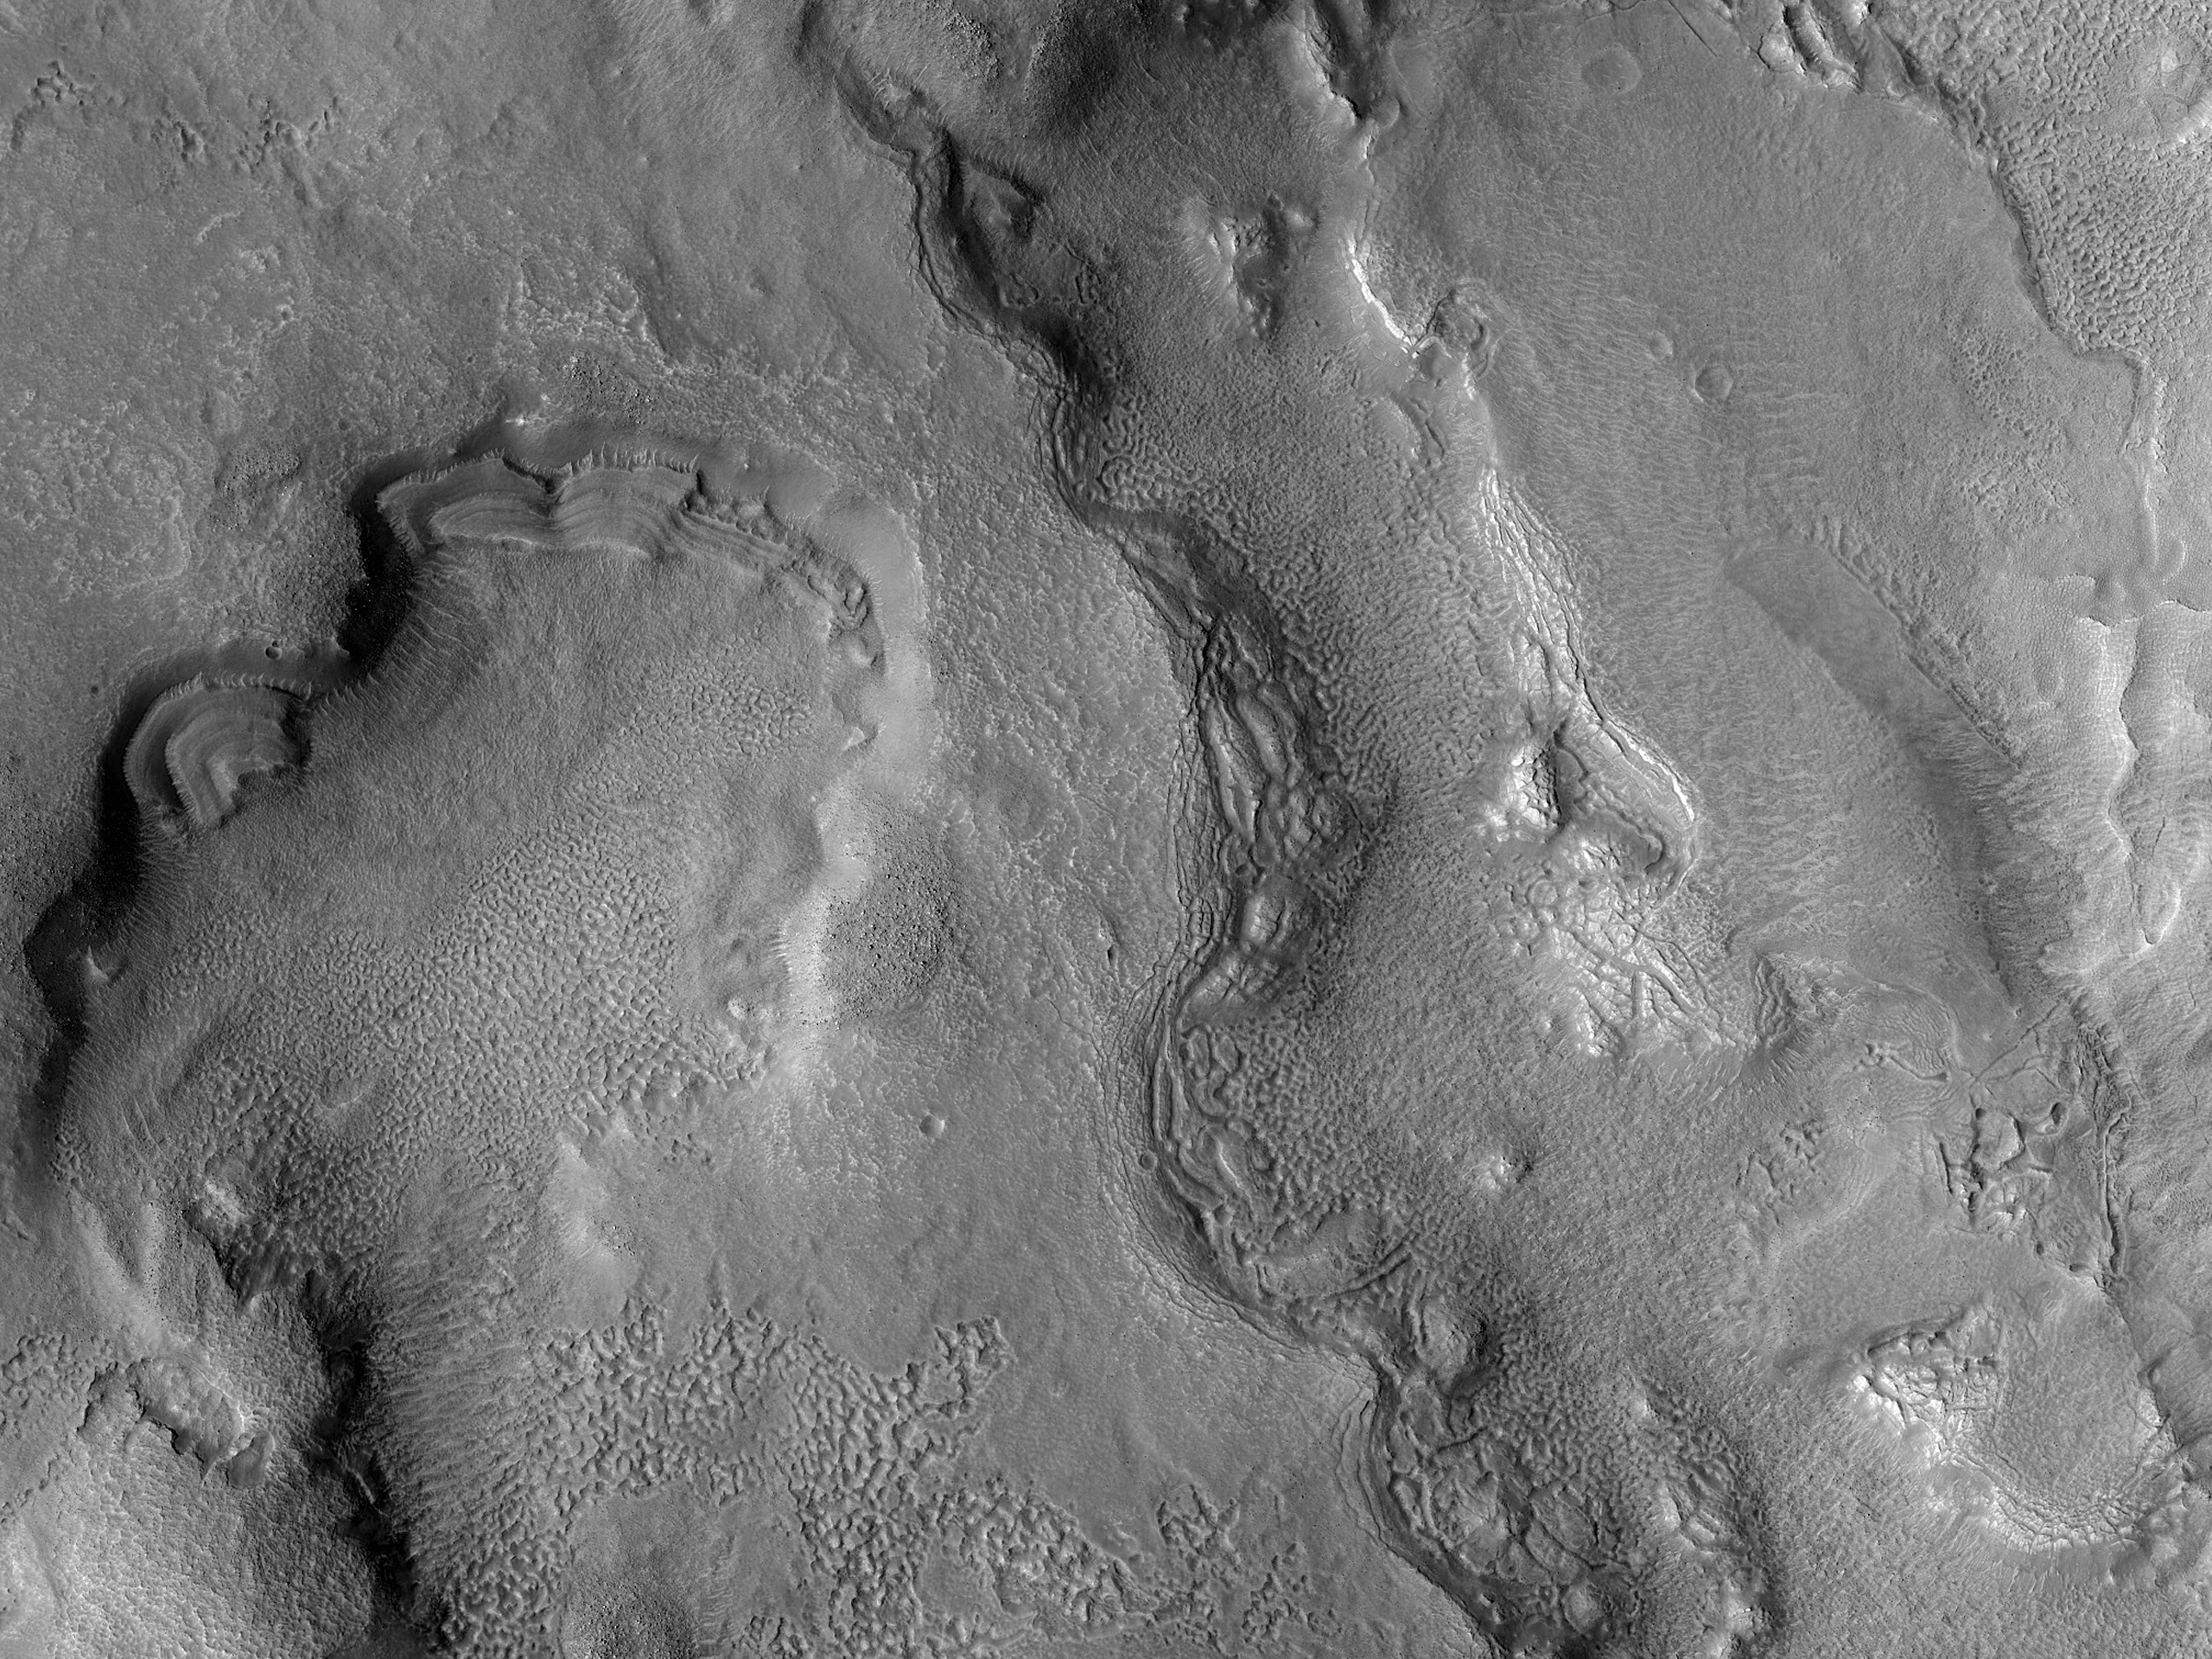 Dipping Layers in Depression in Ismeniae Fossae